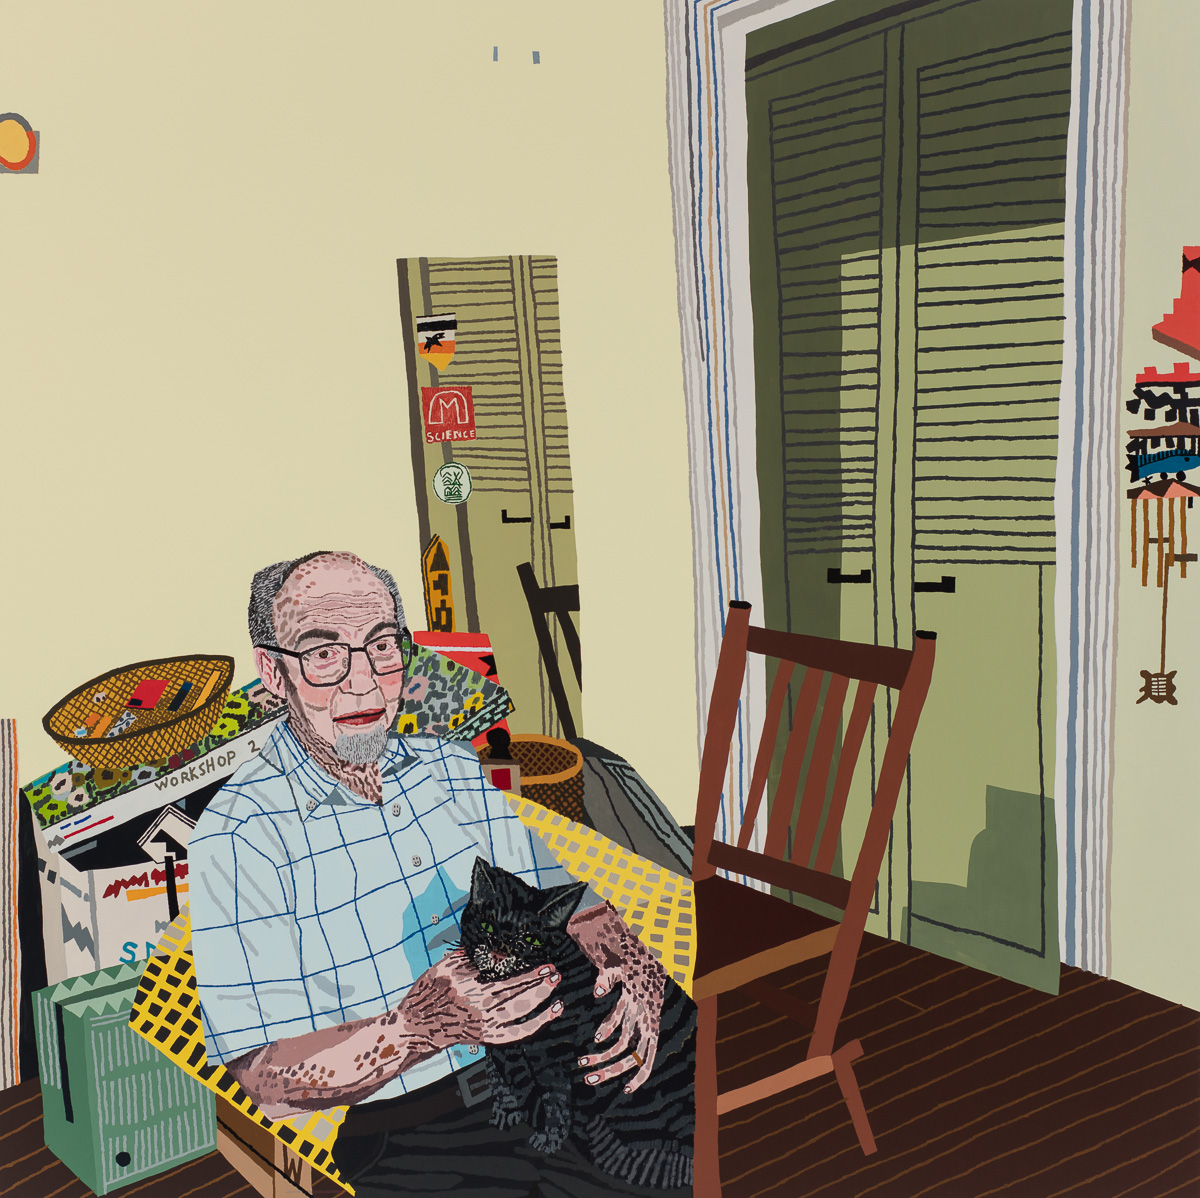 Jonas Wood, Rosy In My Room With His Cat, 2016, oil and acrylic on canvas, 68 x 68 inches (courtesy of Anton Kern Gallery)